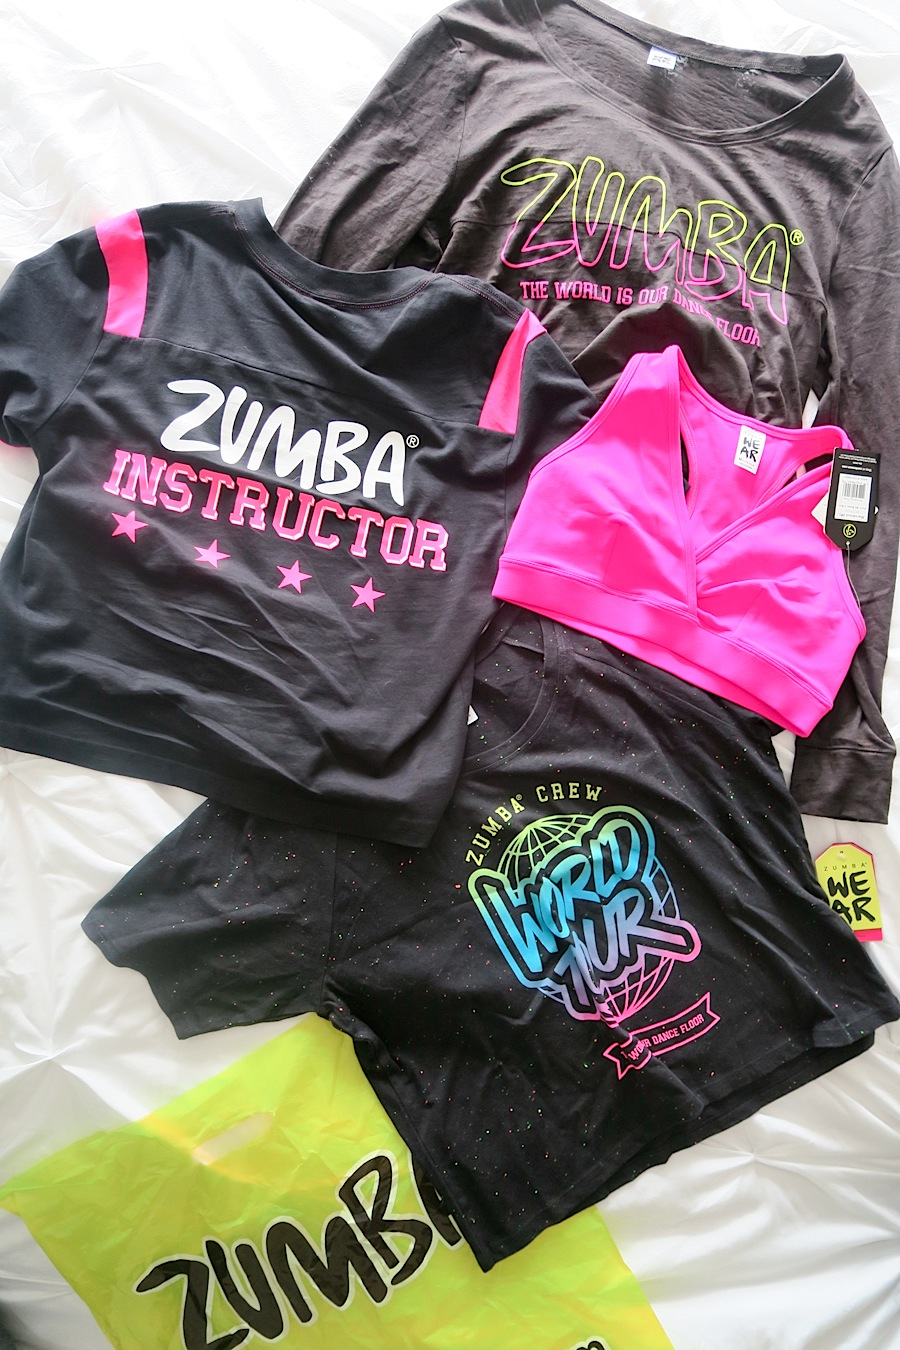 Zumba Convention 2016 Day 3 Continued Zumba Prom Swag